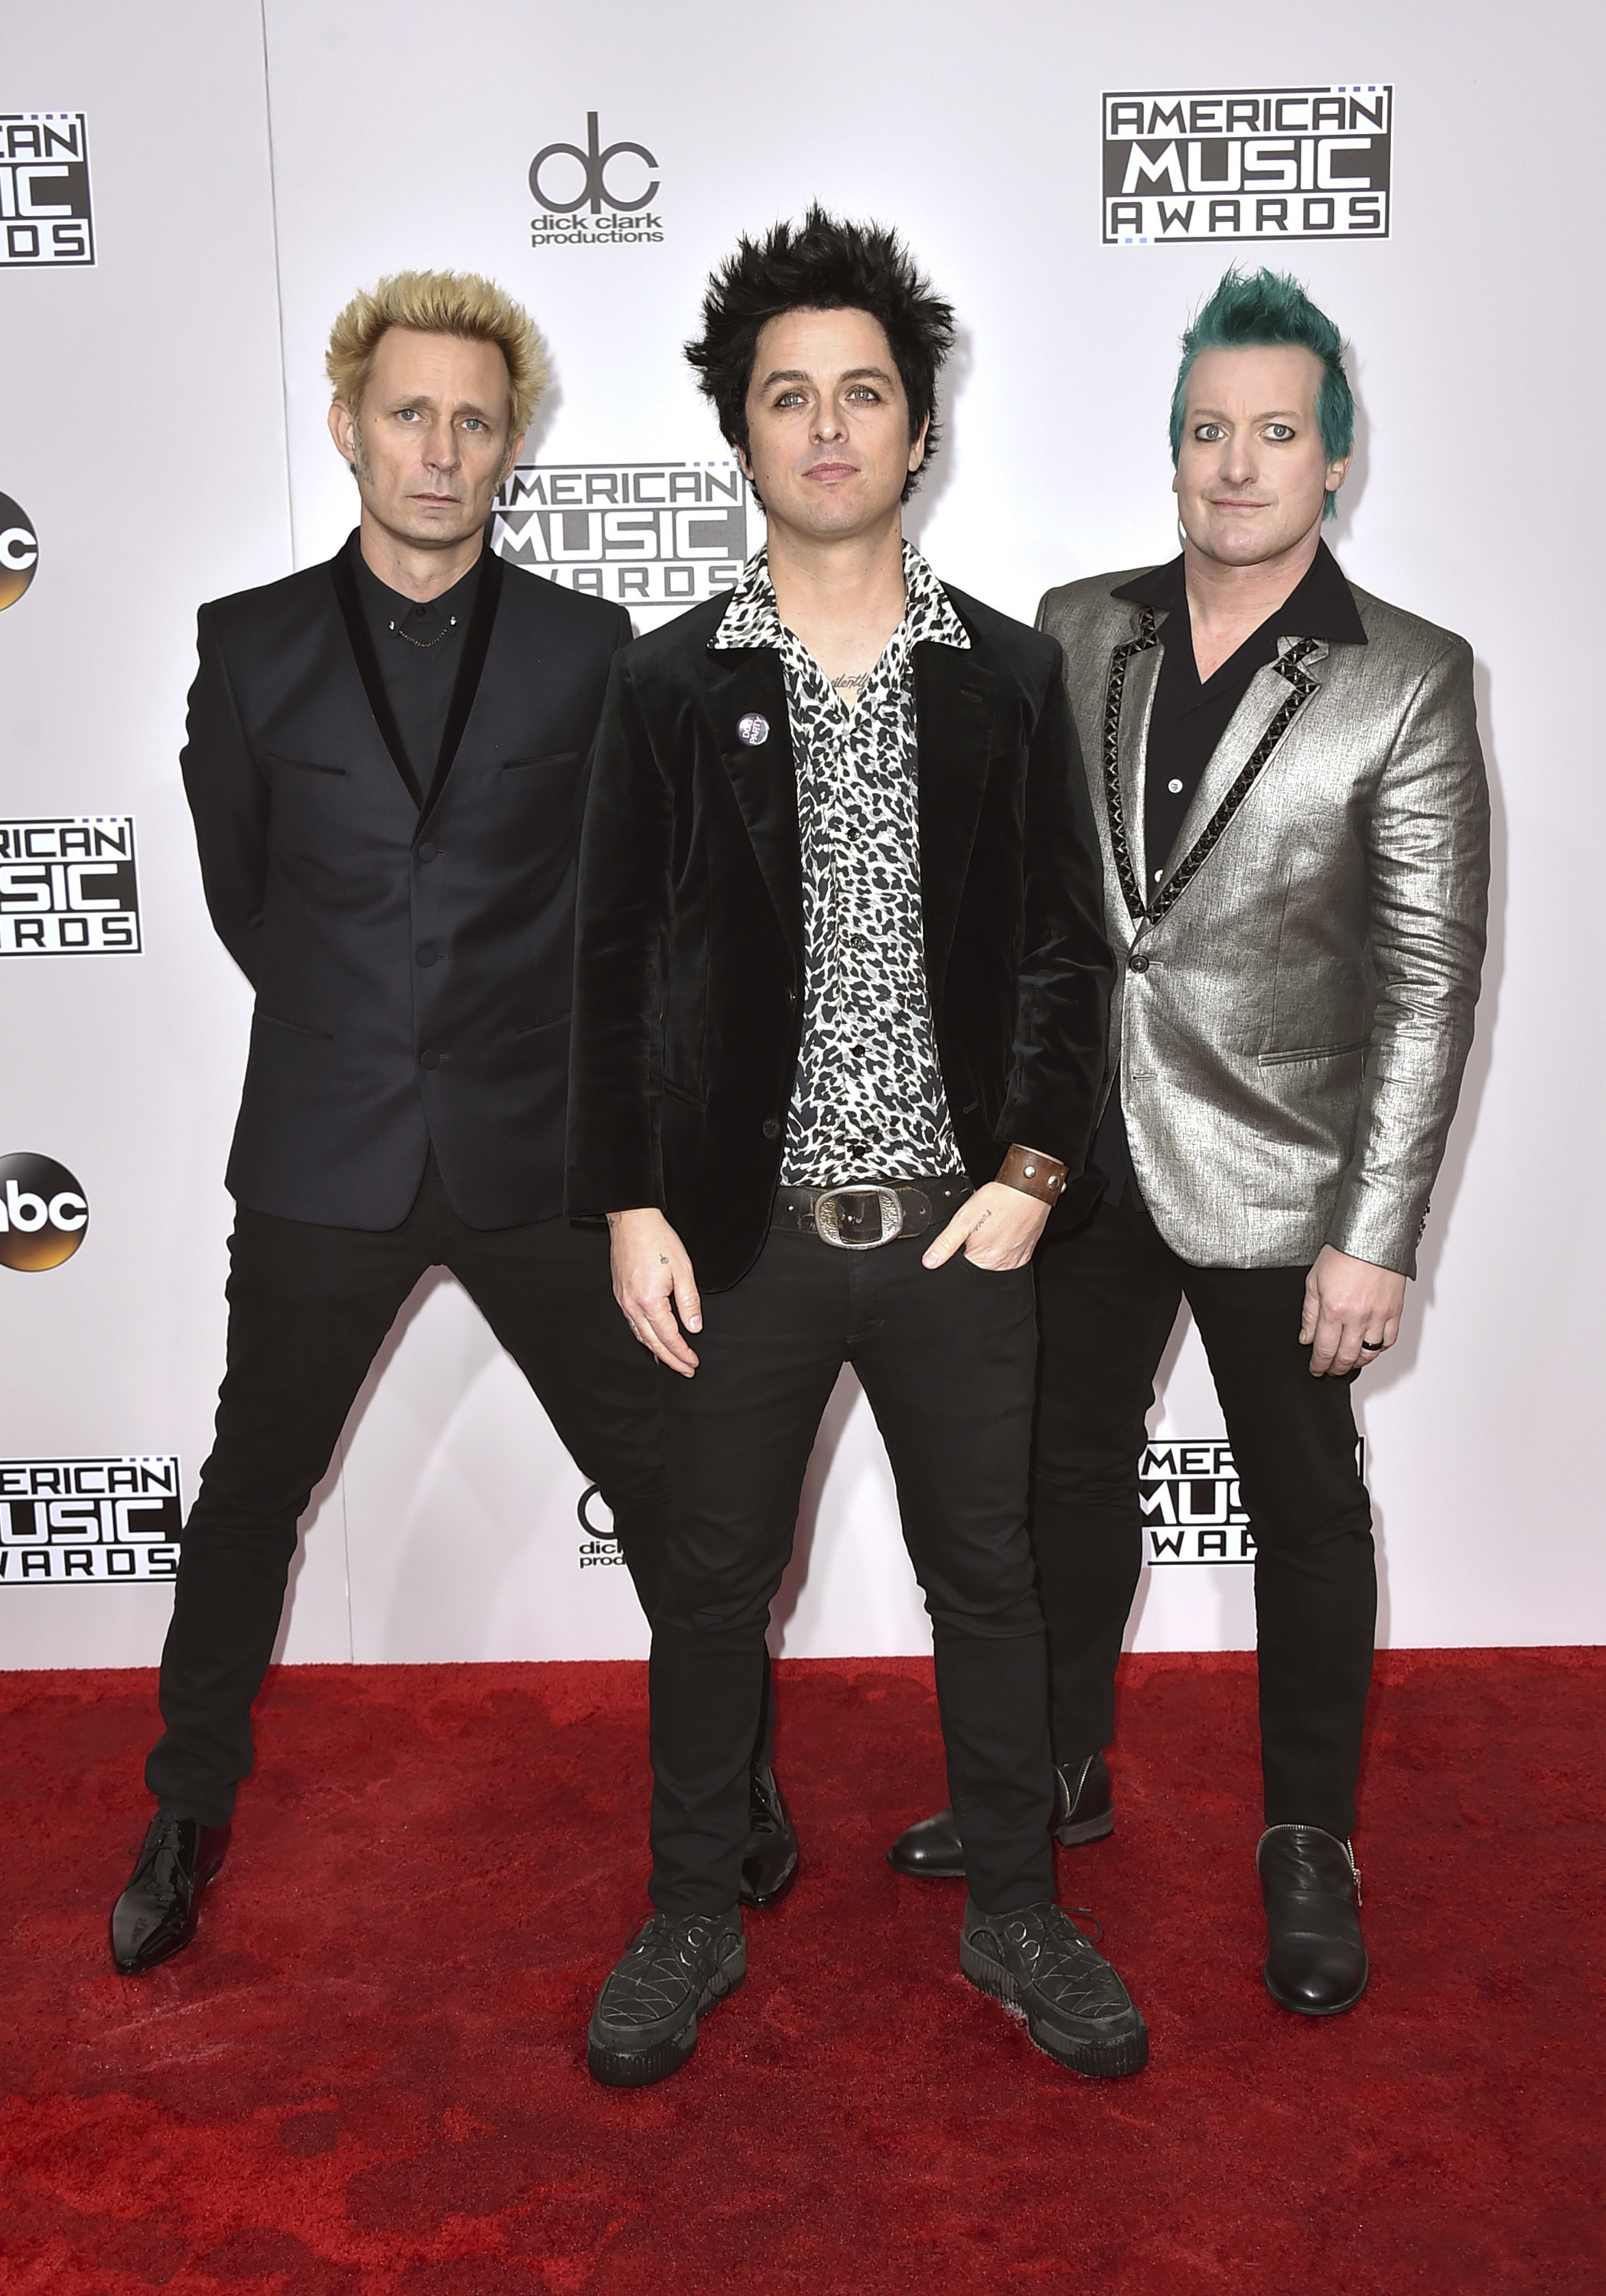 KK51 Los Angeles - Èlenovia skupiny Green Day Mike Dirnt (v¾avo), Billie Joe Armstrong (uprostred) a Tre Cool prichádzajú na ude¾ovanie Amerických hudobných cien 2016 v Los Angeles 20. novembra 2016. FOTO TASR/AP Mike Dirnt, from left, Billie Joe Armstrong, and Tre Cool, of Green Day, arrive at the American Music Awards at the Microsoft Theater on Sunday, Nov. 20, 2016, in Los Angeles. (Photo by Jordan Strauss/Invision/AP)